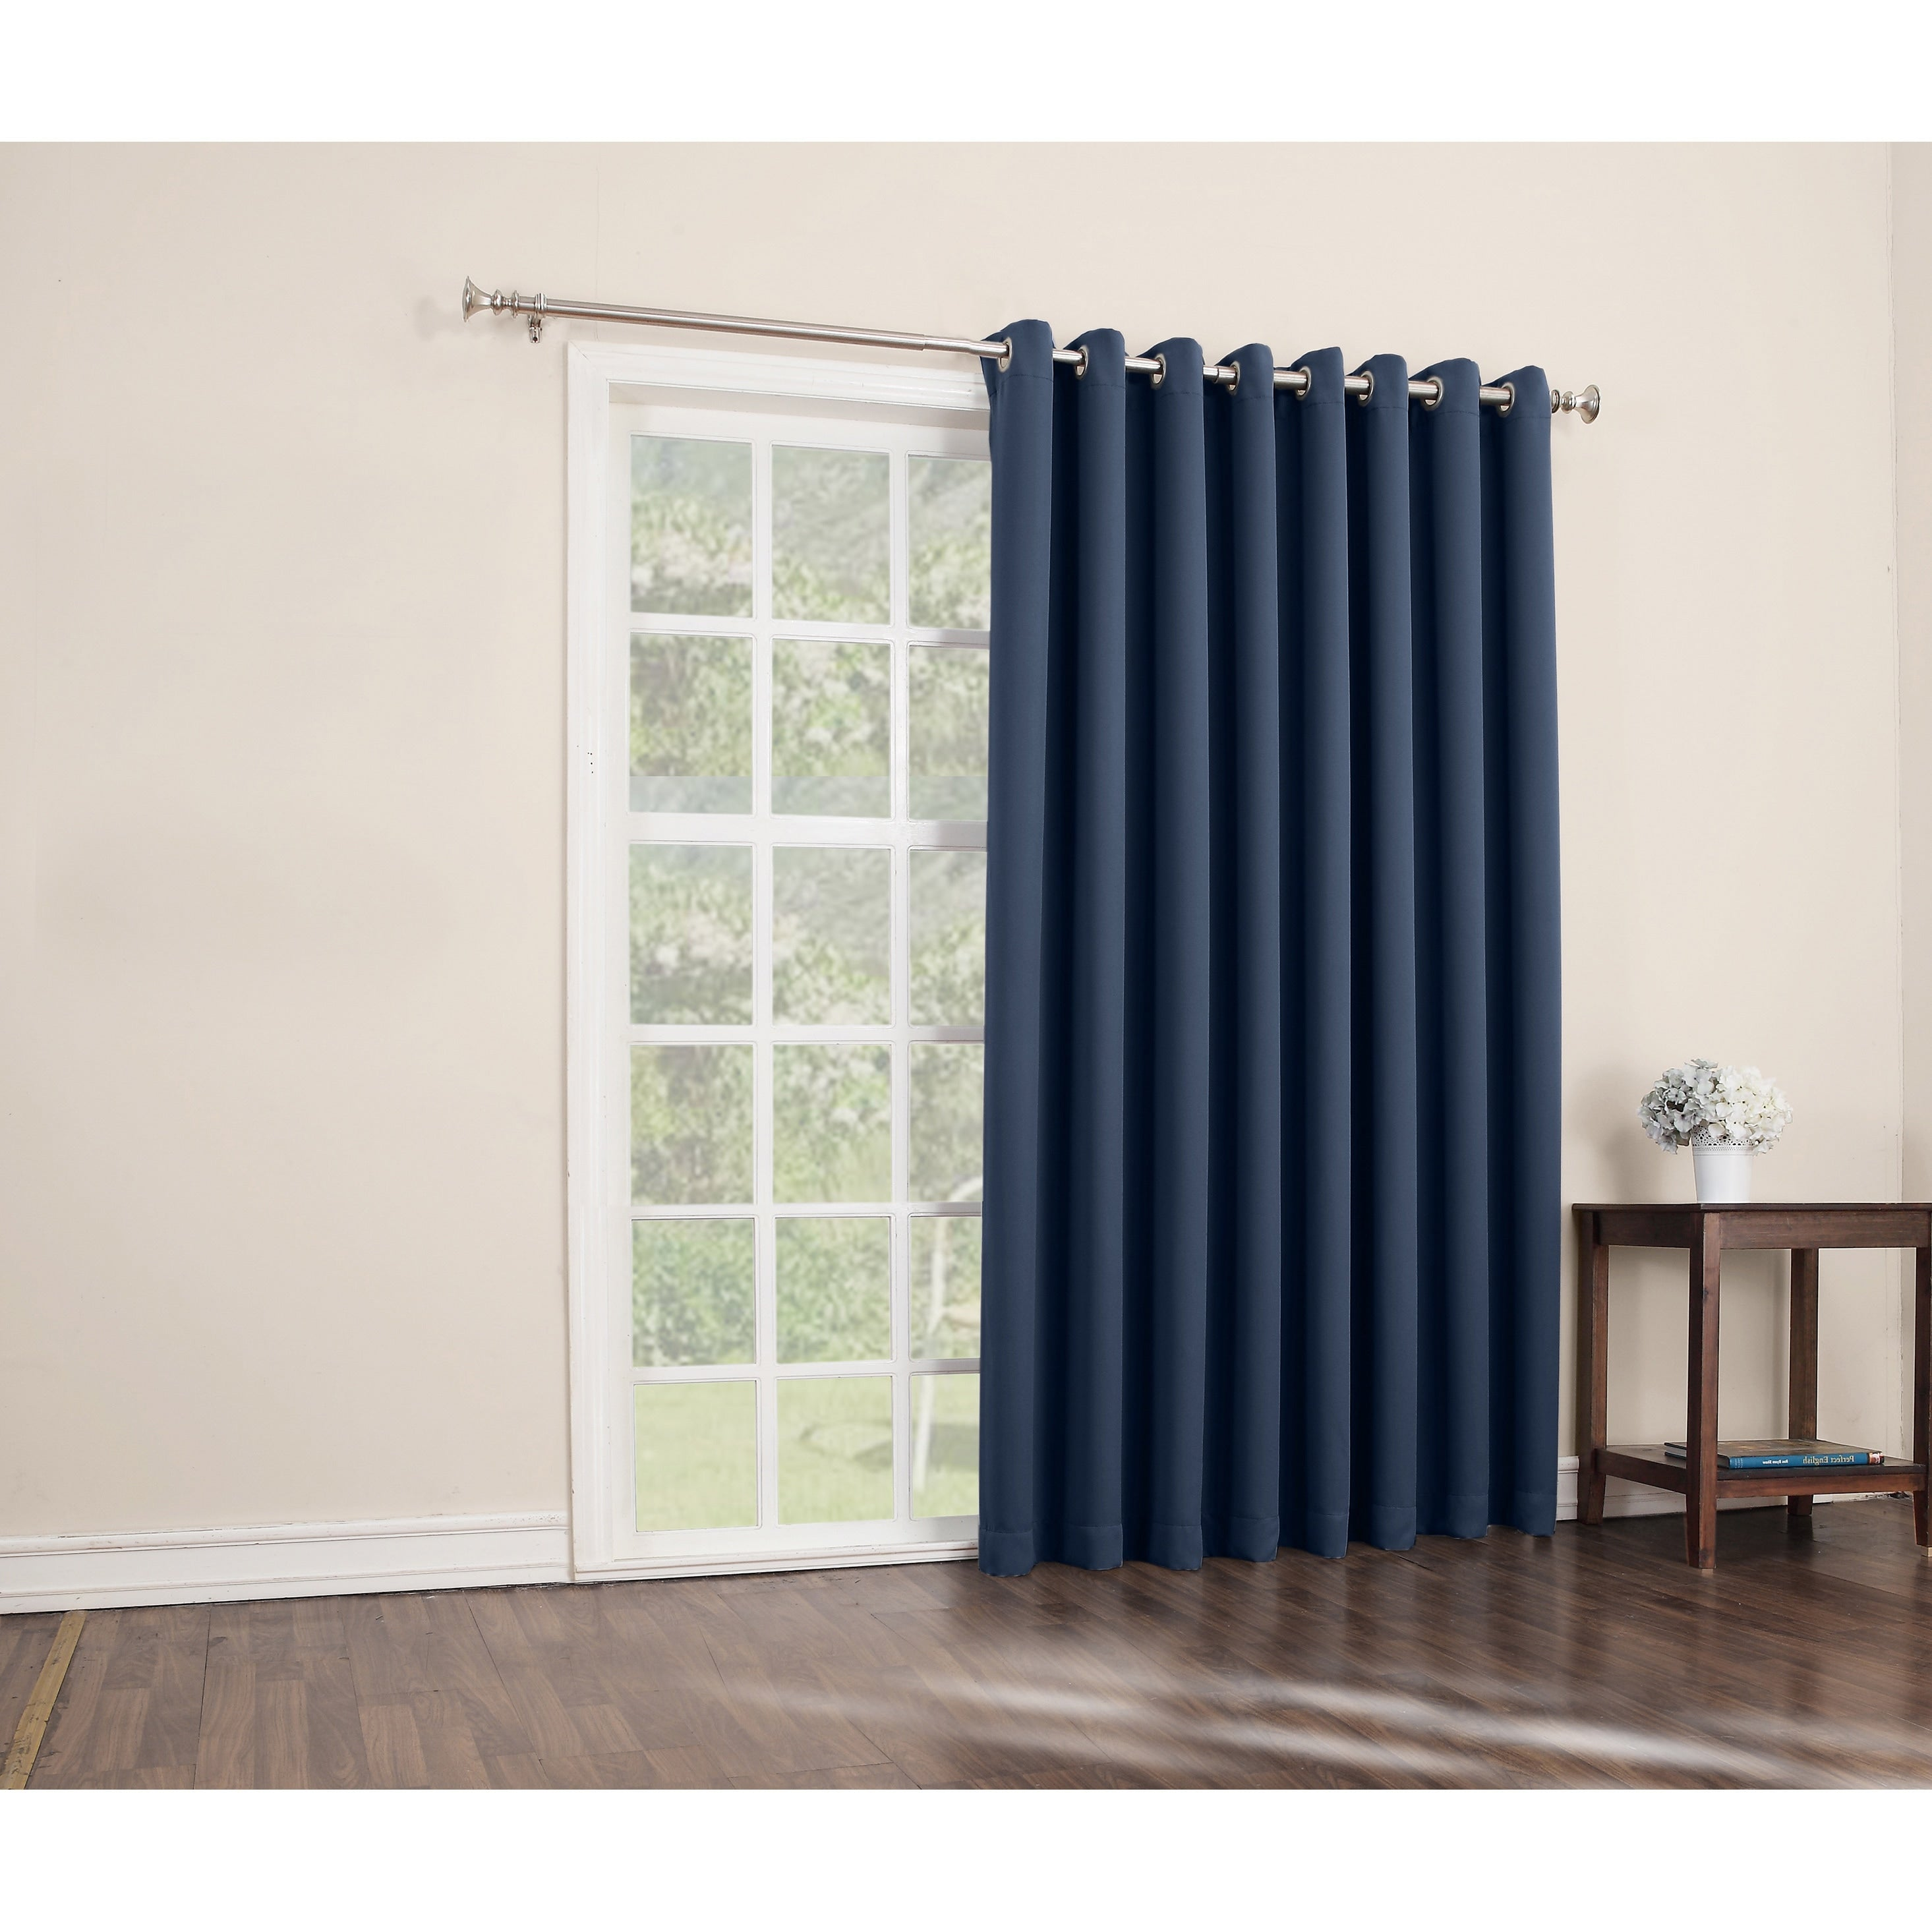 Barley Sliding Door Curtain Sliding Patio Door Panel Window Treatment Single Panel Modern Design Contemporary Curtains